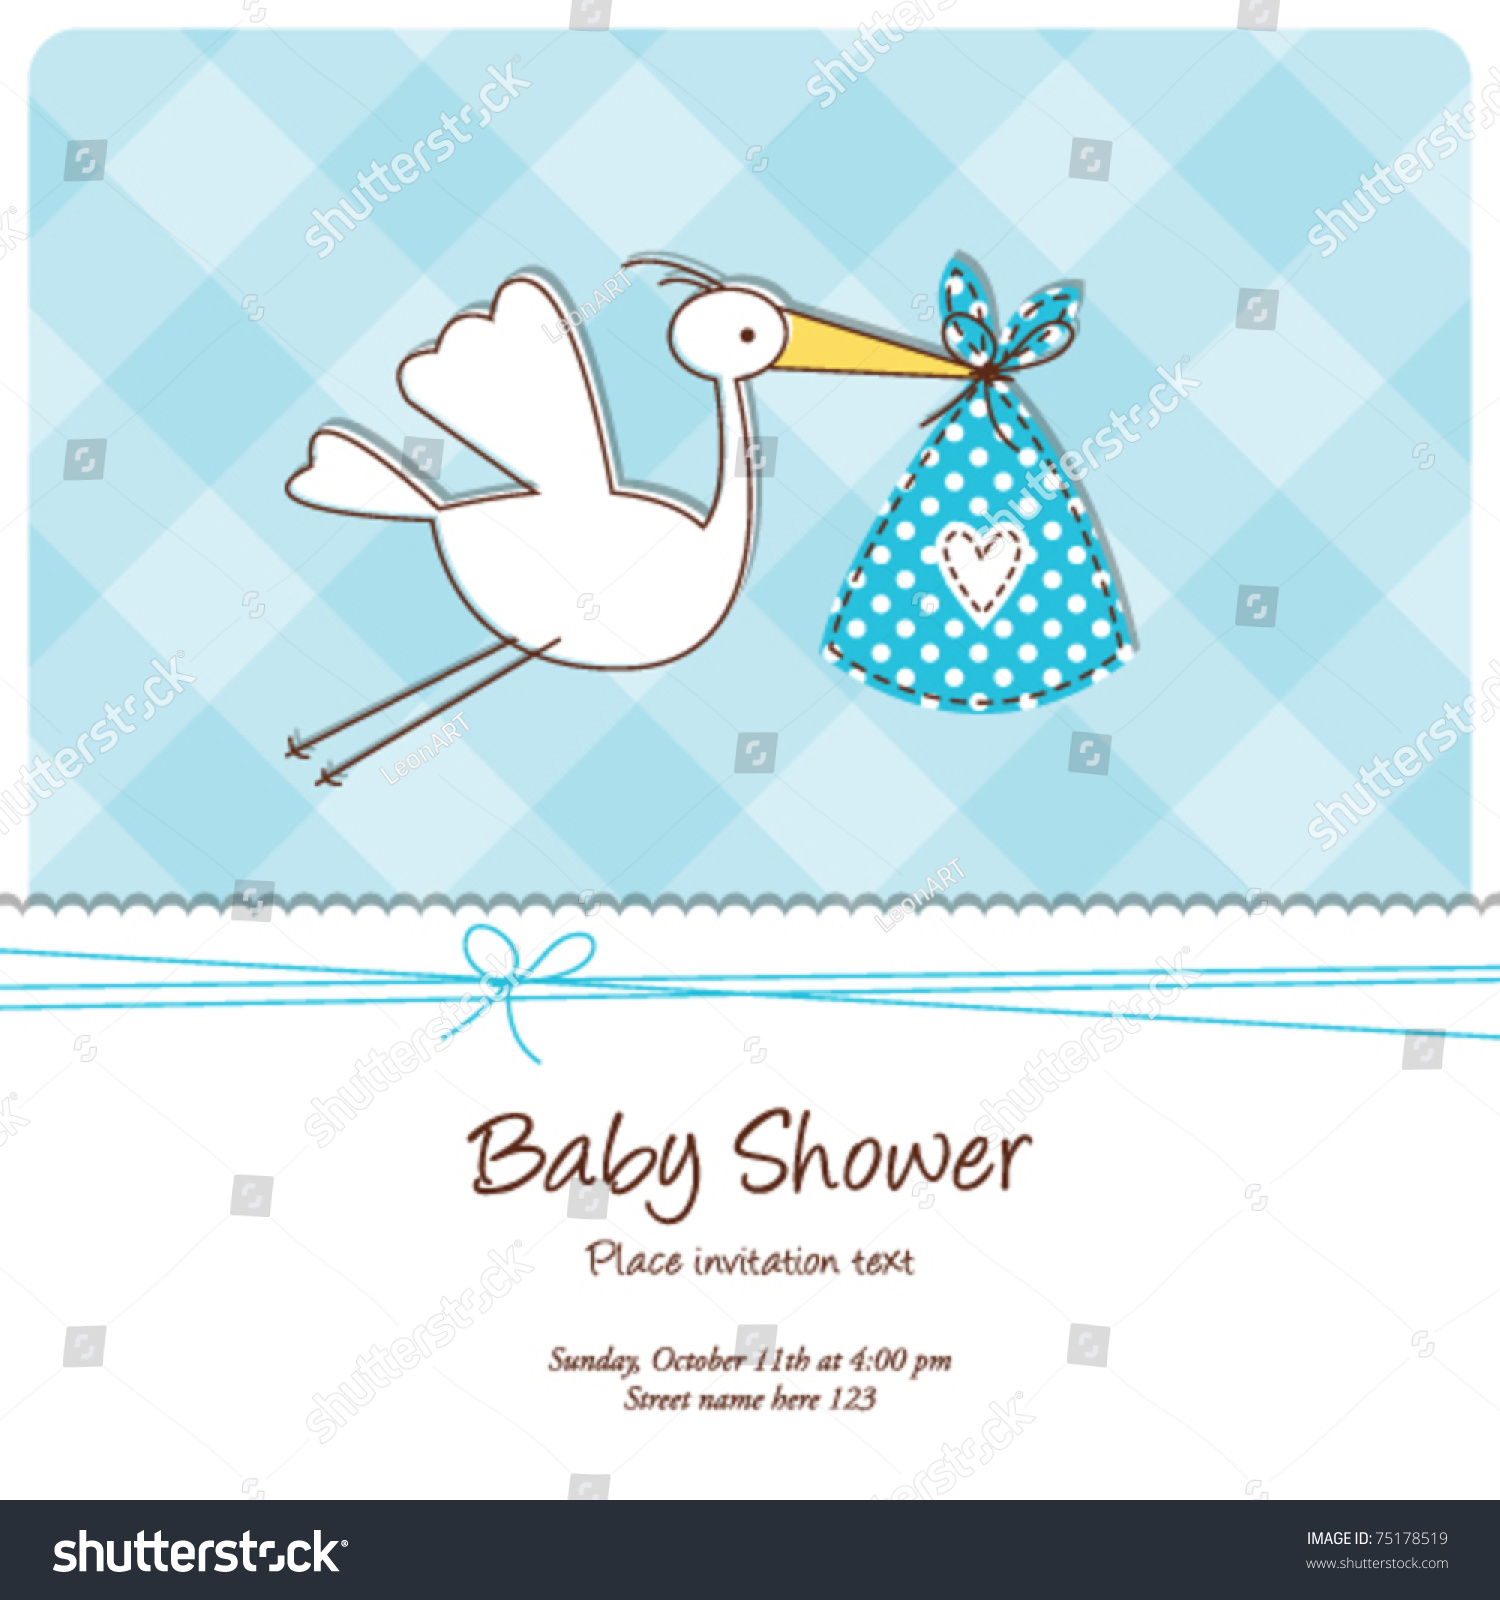 Baby Shower Invitation Template Cute Baby Stock Vector 75178519 ...